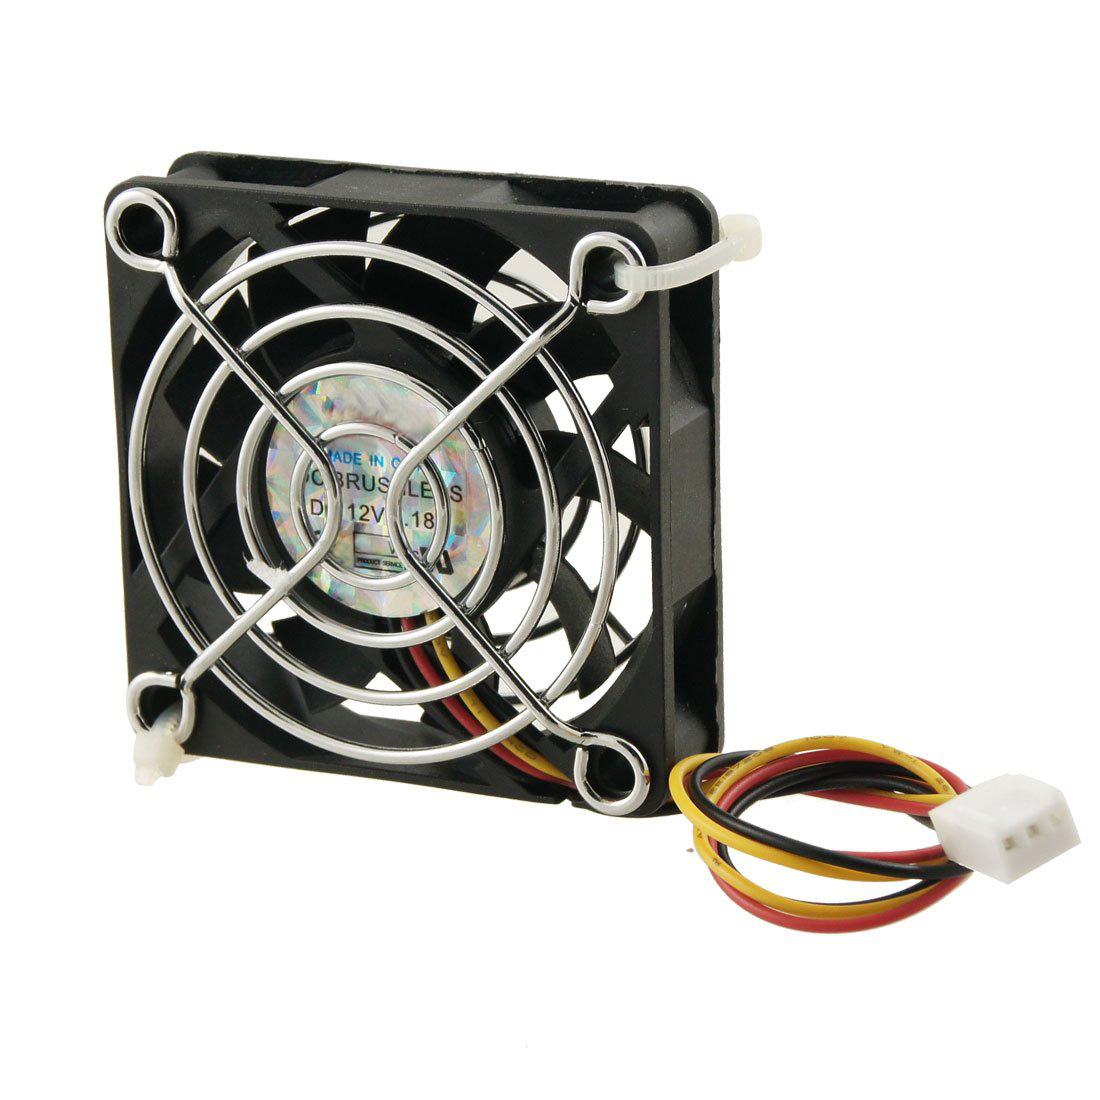 GTFS-60mm x 60mm x 15mm 3 Pins Cooling Fan w Metal Finger Guards шурупы 100 3 3 60 m3 double pass 60 mm